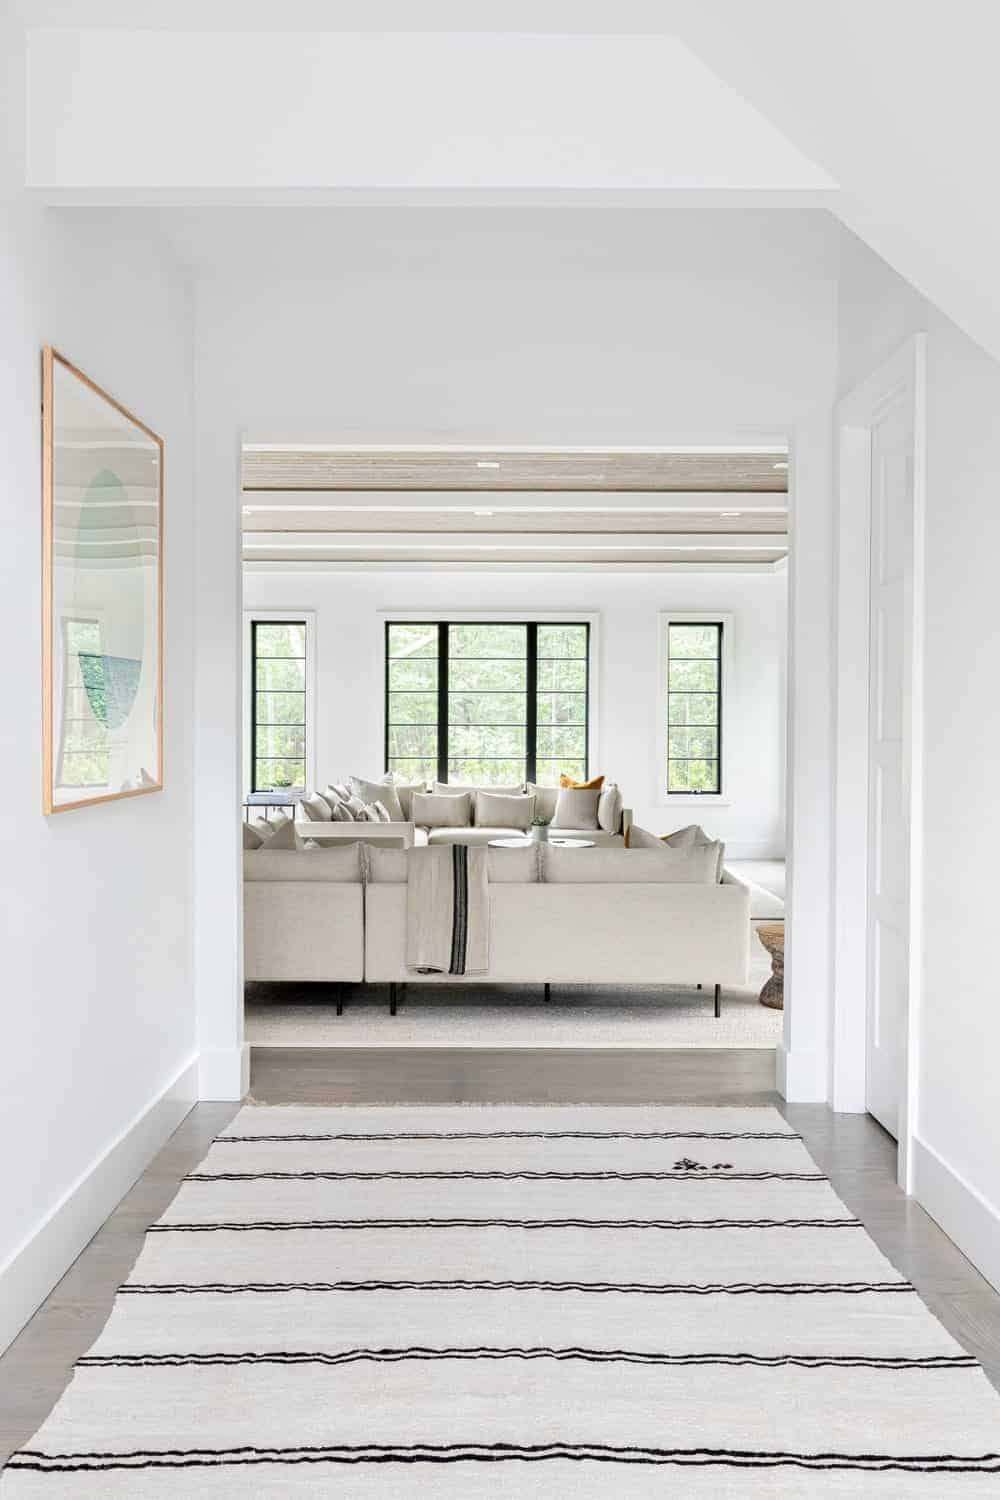 A hallway leading to the home's living room, featuring white walls and a stylish area rug.